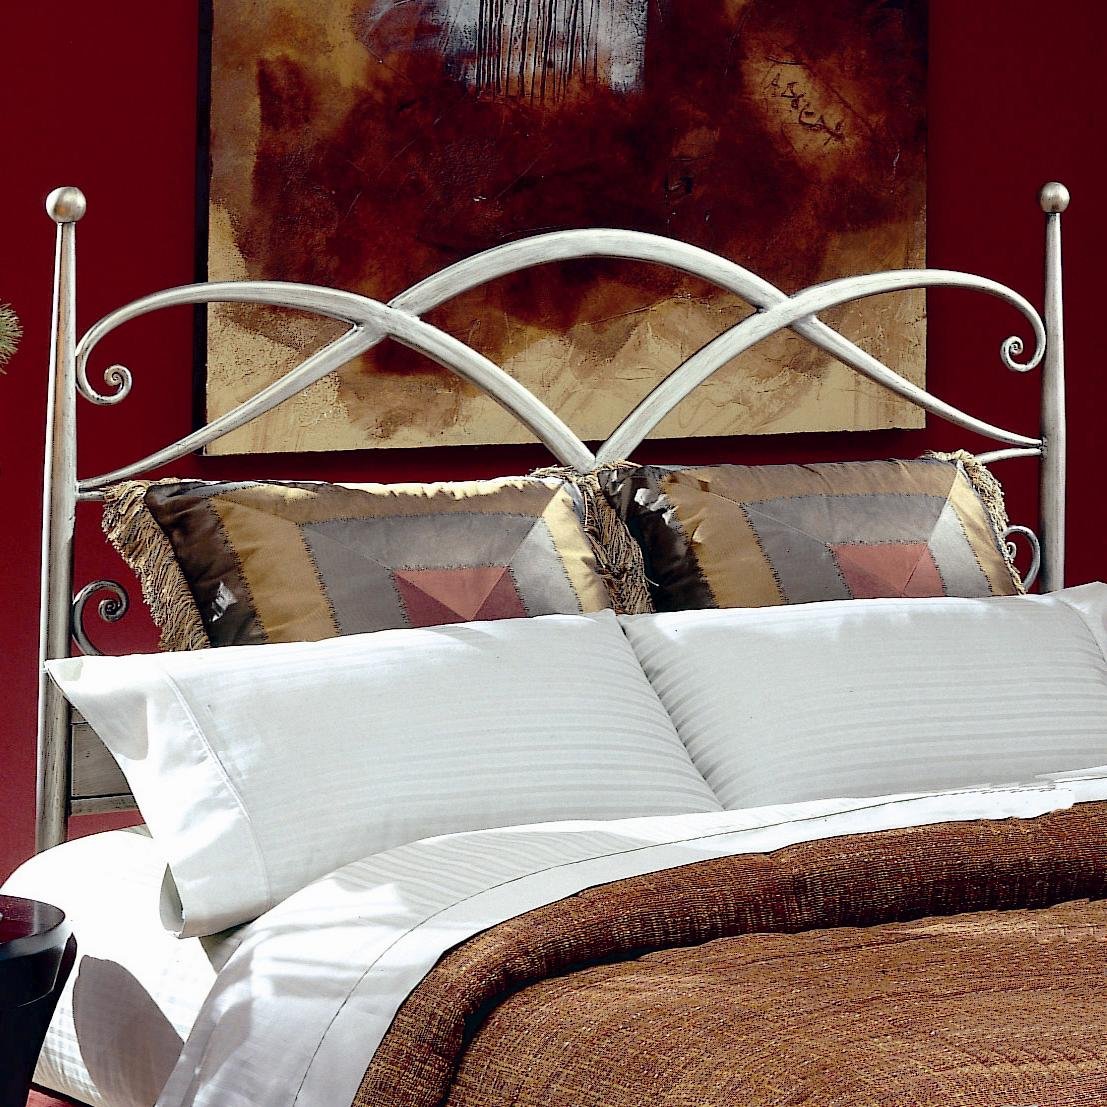 Astonishing Metal Beds Queen Cutlass Headboard By Largo At Lindys Furniture Company Home Interior And Landscaping Eliaenasavecom